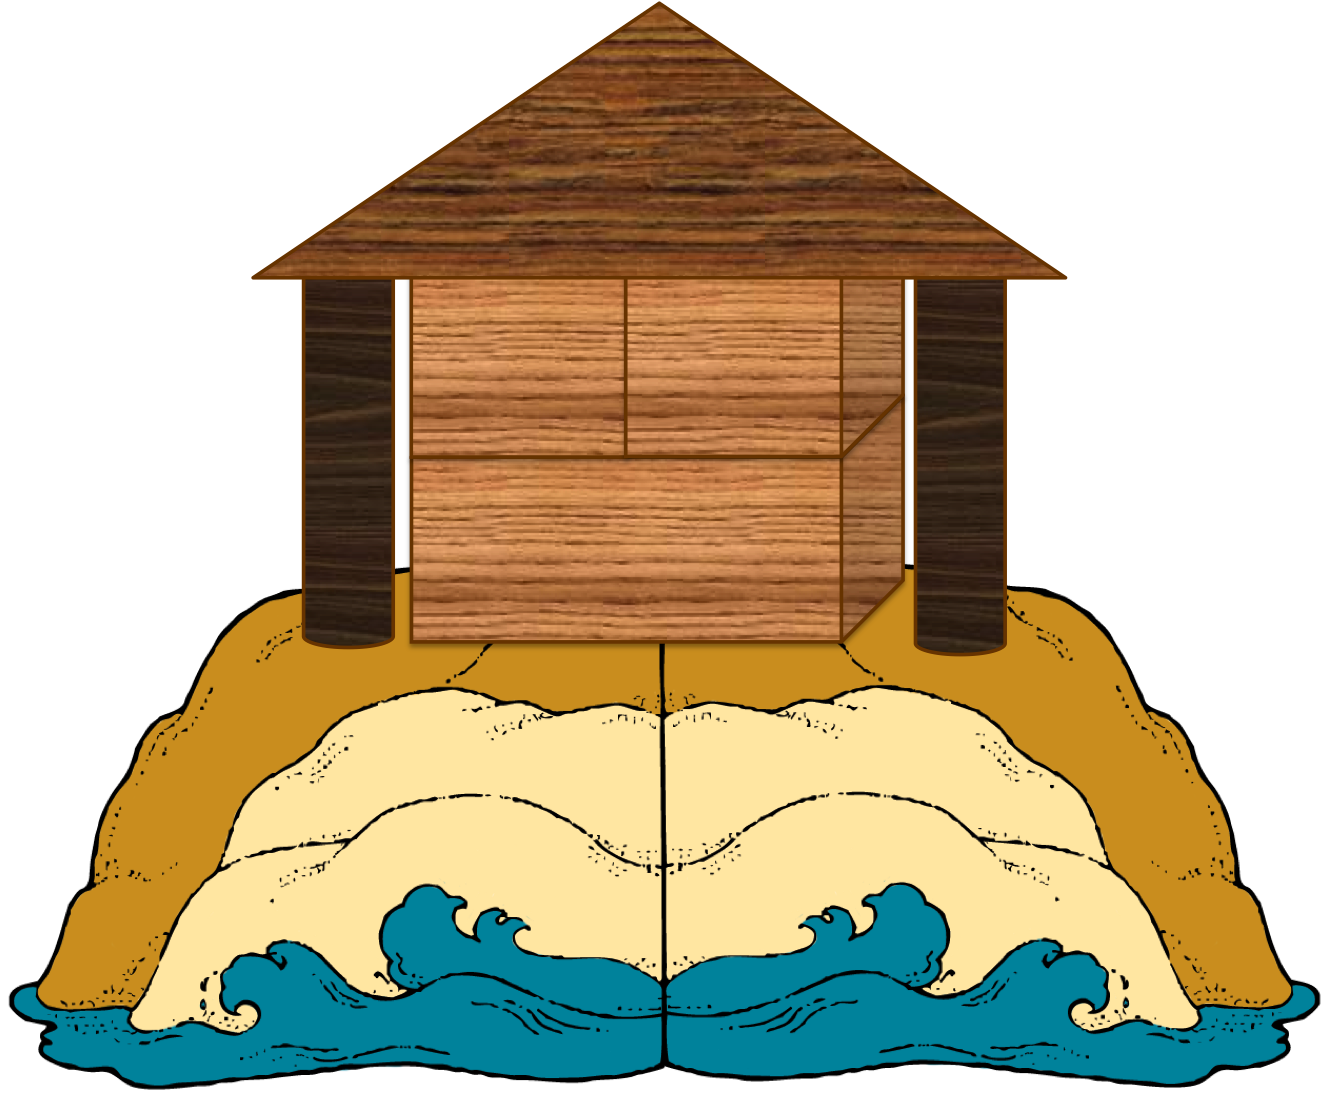 clipart house on rock - photo #41